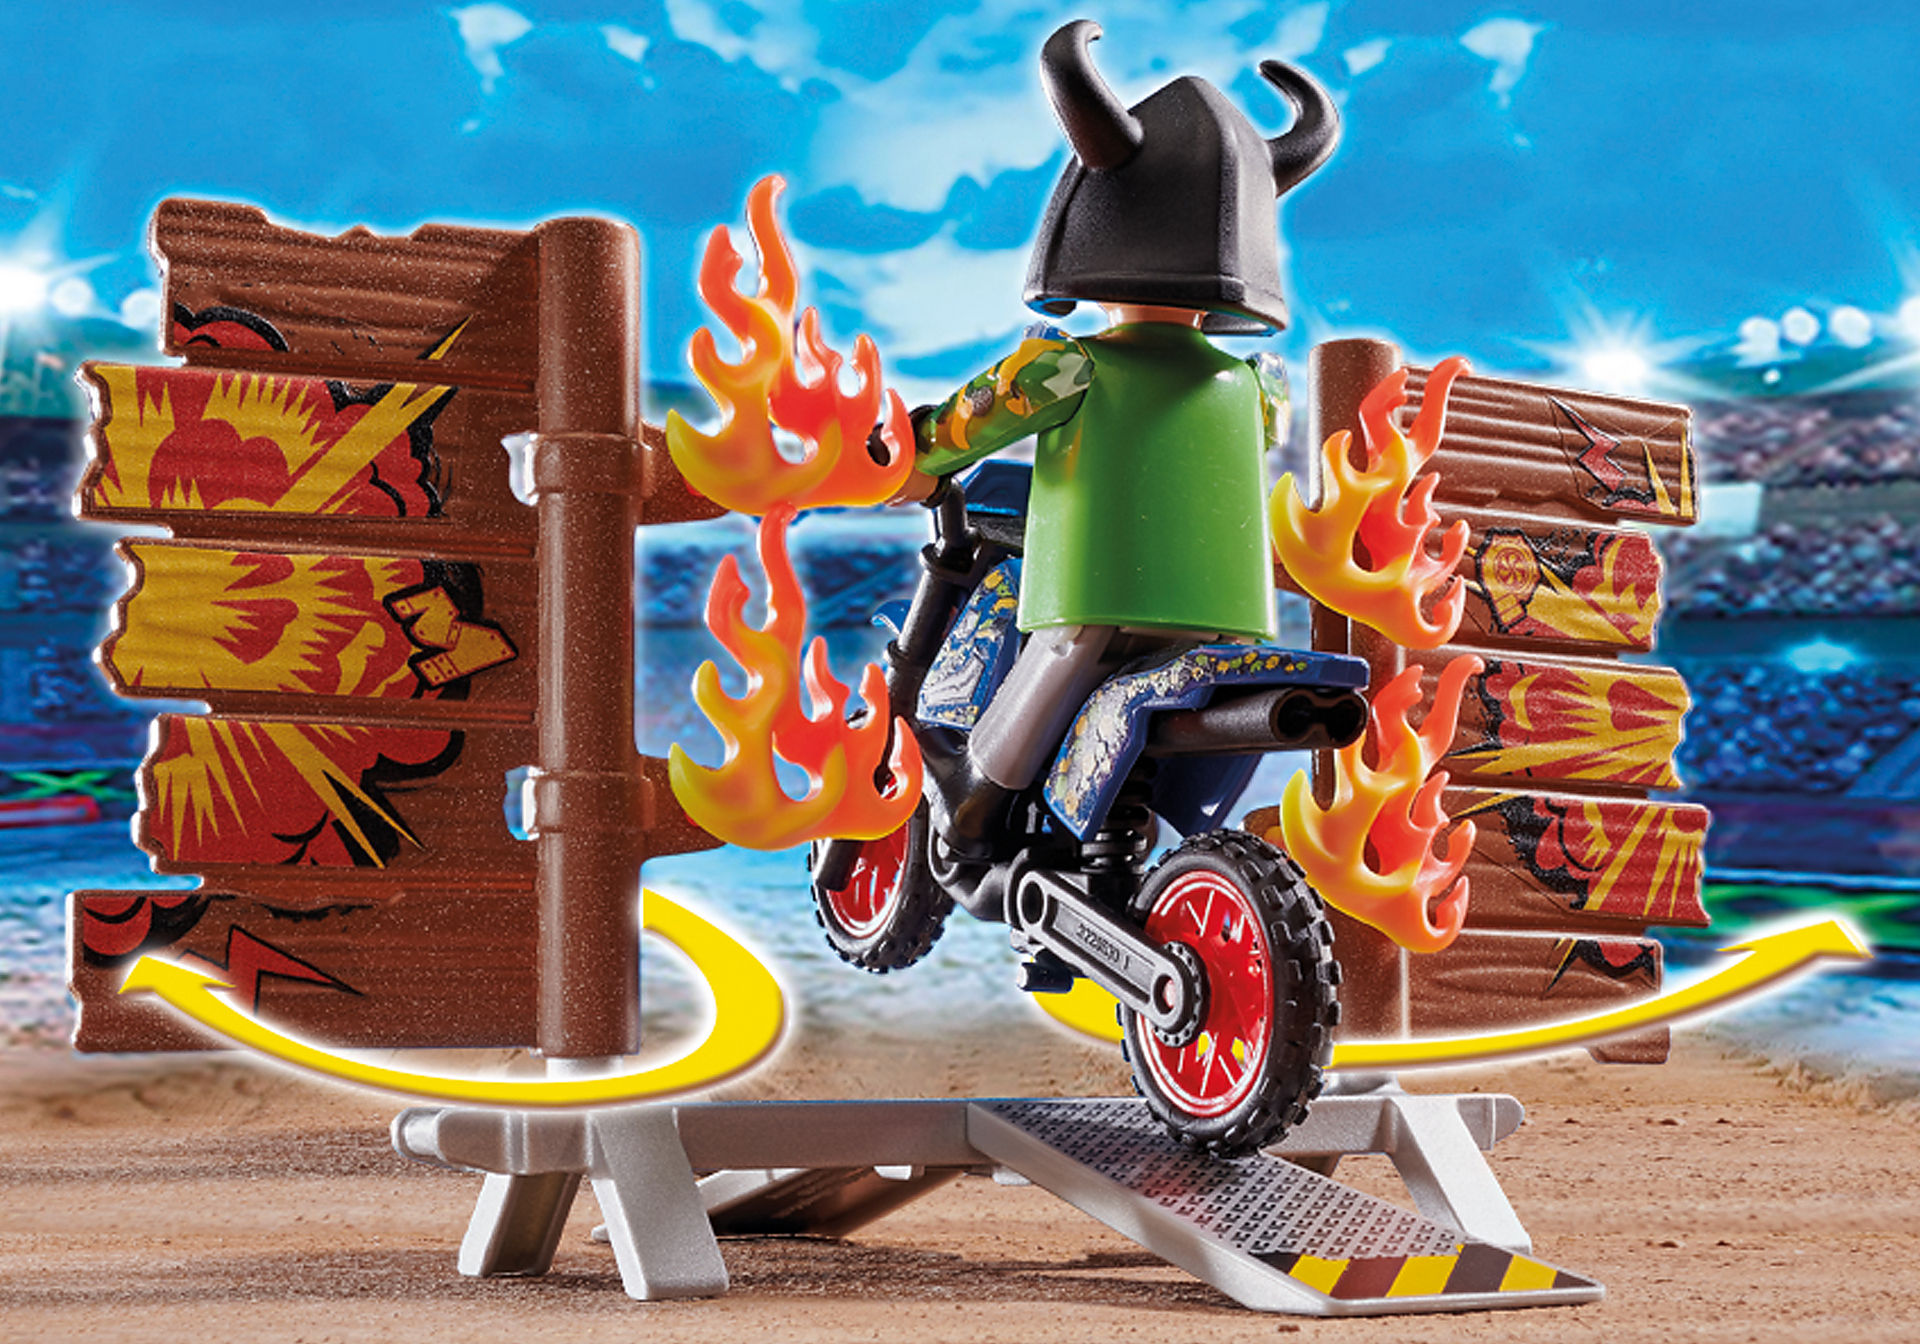 70553 Stunt Show Motocross with Fiery Wall zoom image4